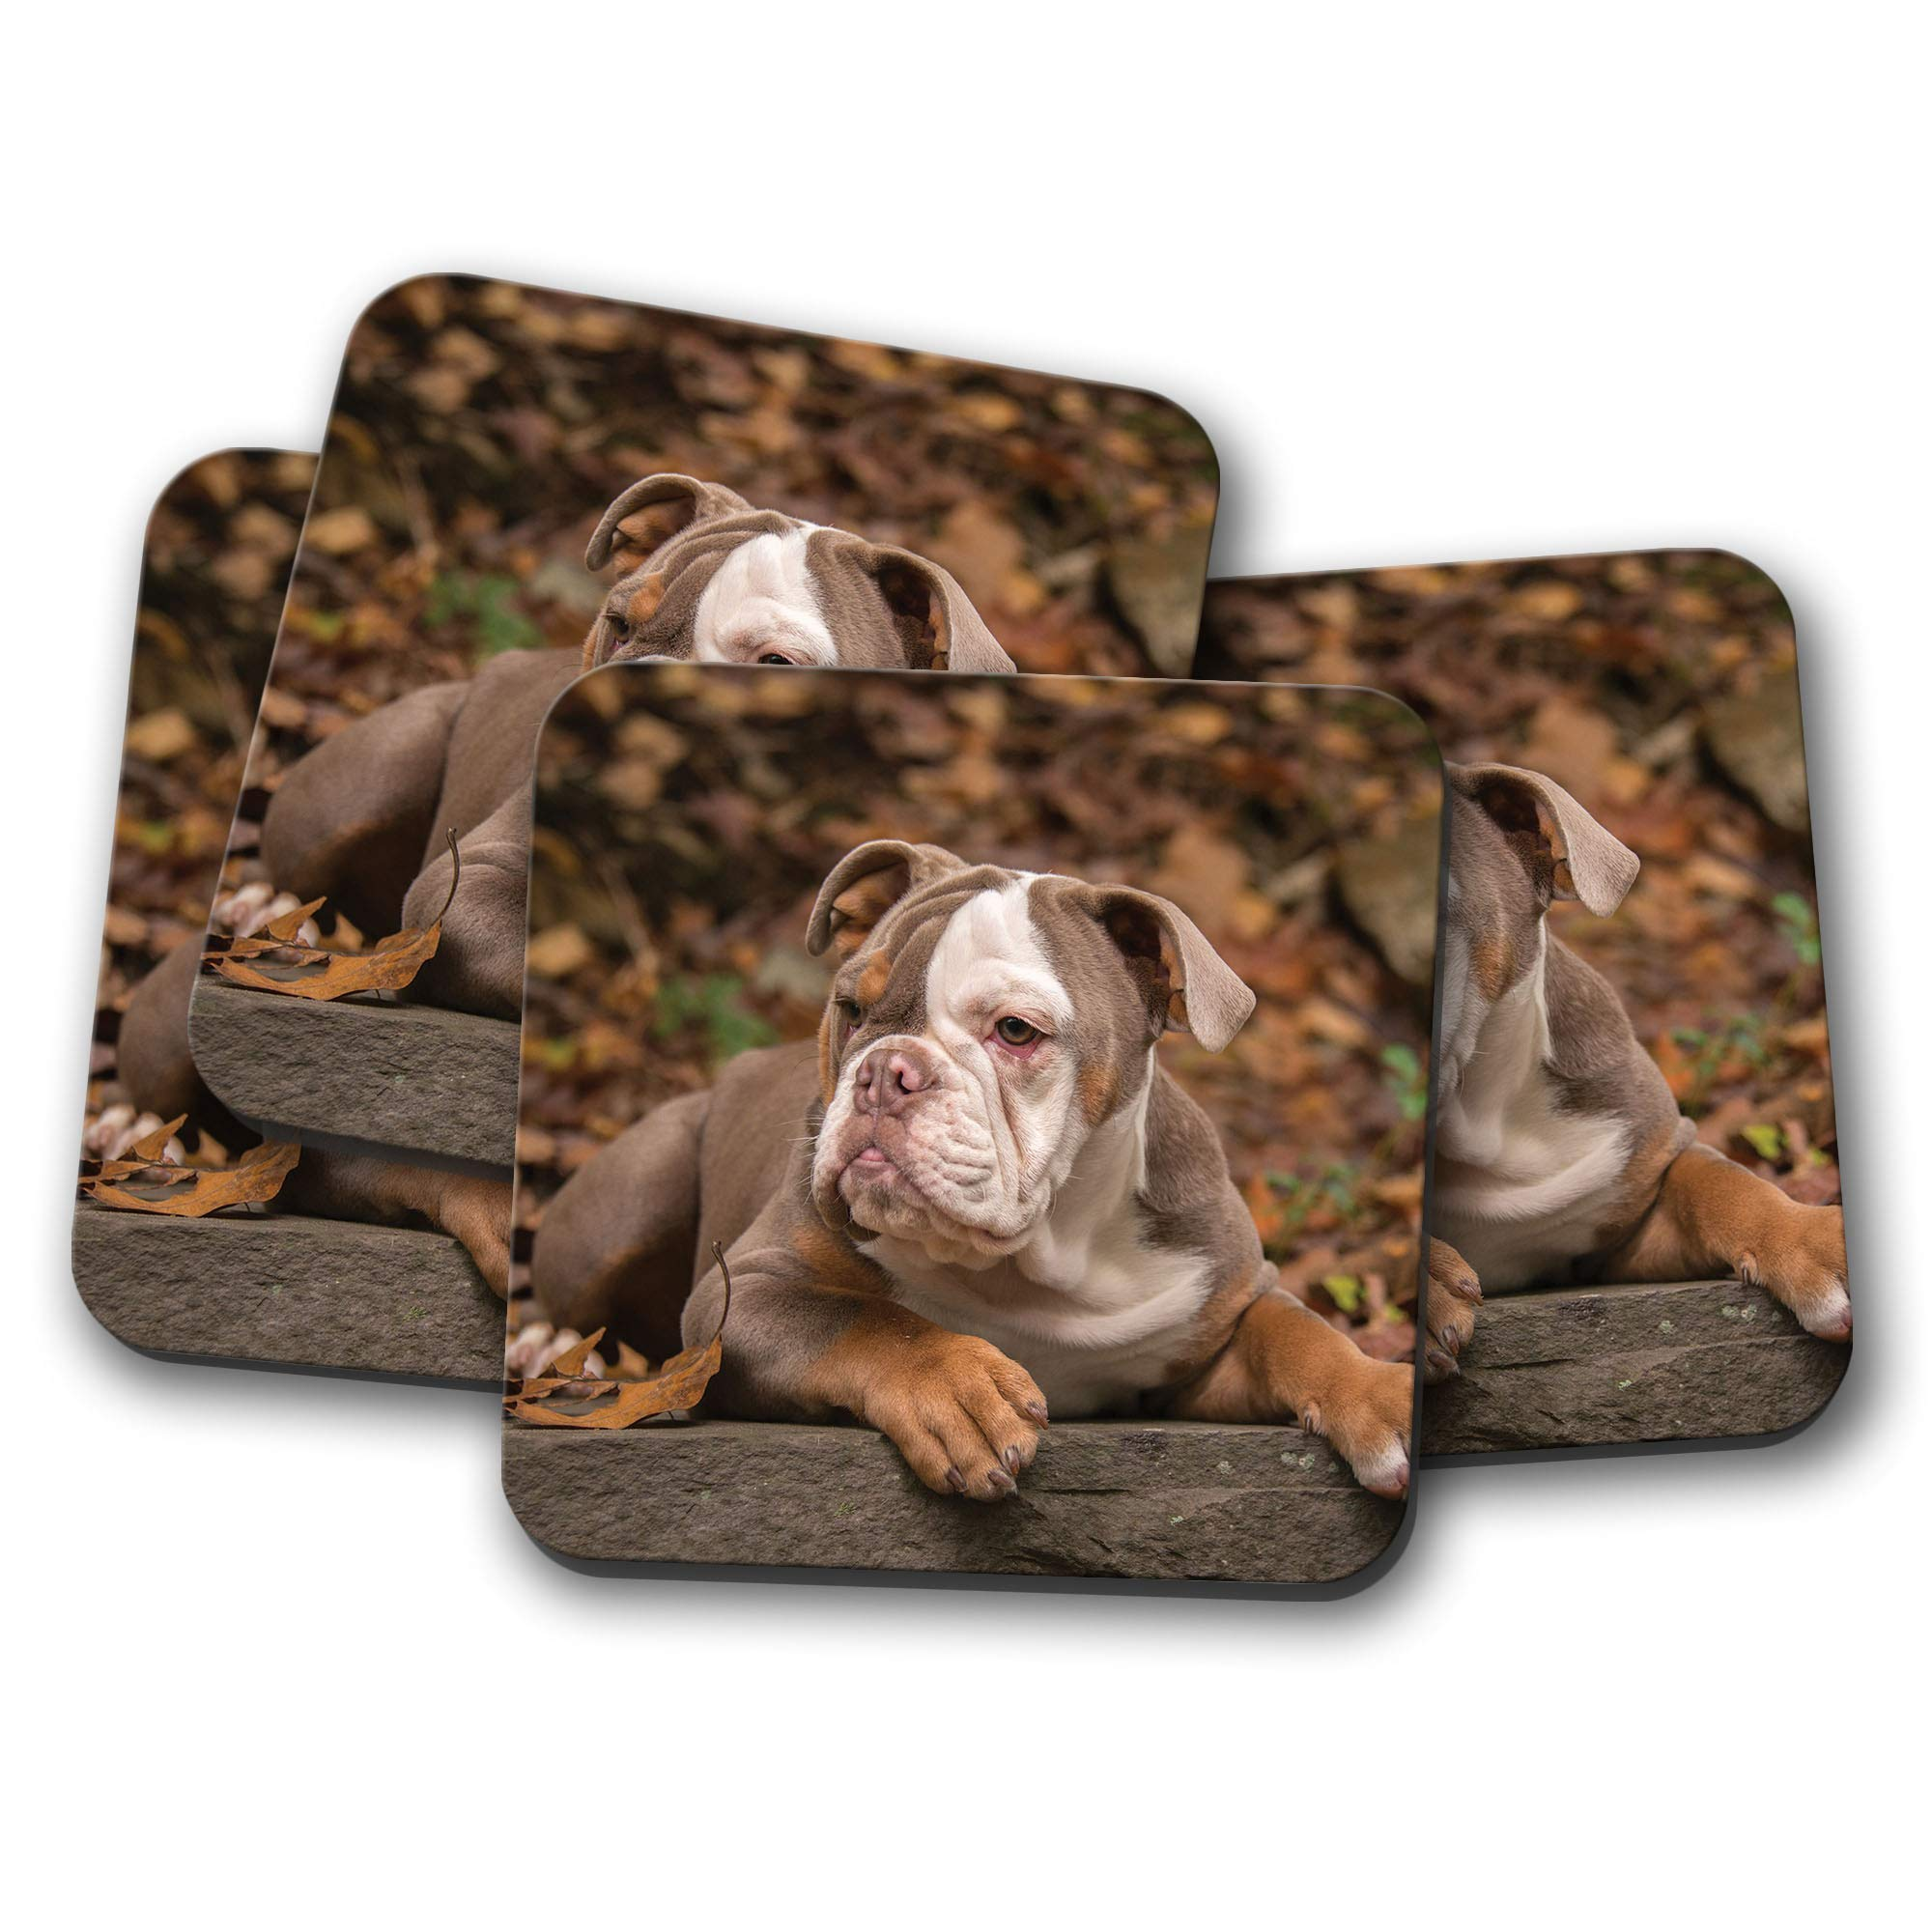 4 Set – Adorable American Bulldog Puppy Coaster – Pup Dog Cute Pet Gift #12471